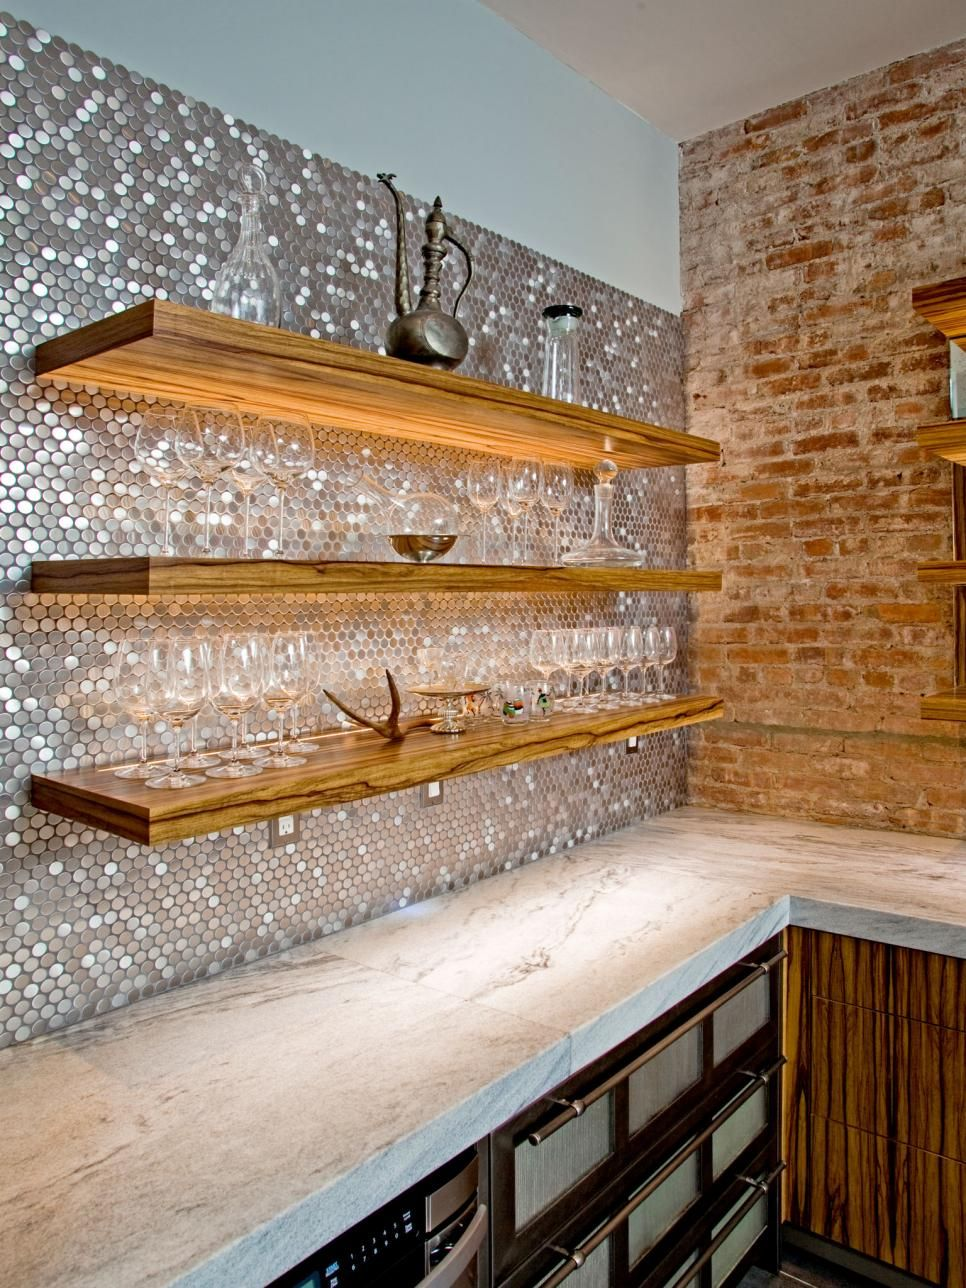 Penny tiles add glamorous shimmer to a kitchen with a reclaimed create this look using merola tile alloy penny round in stainless steel over porcelain mosaic wall tile available at dailygadgetfo Images